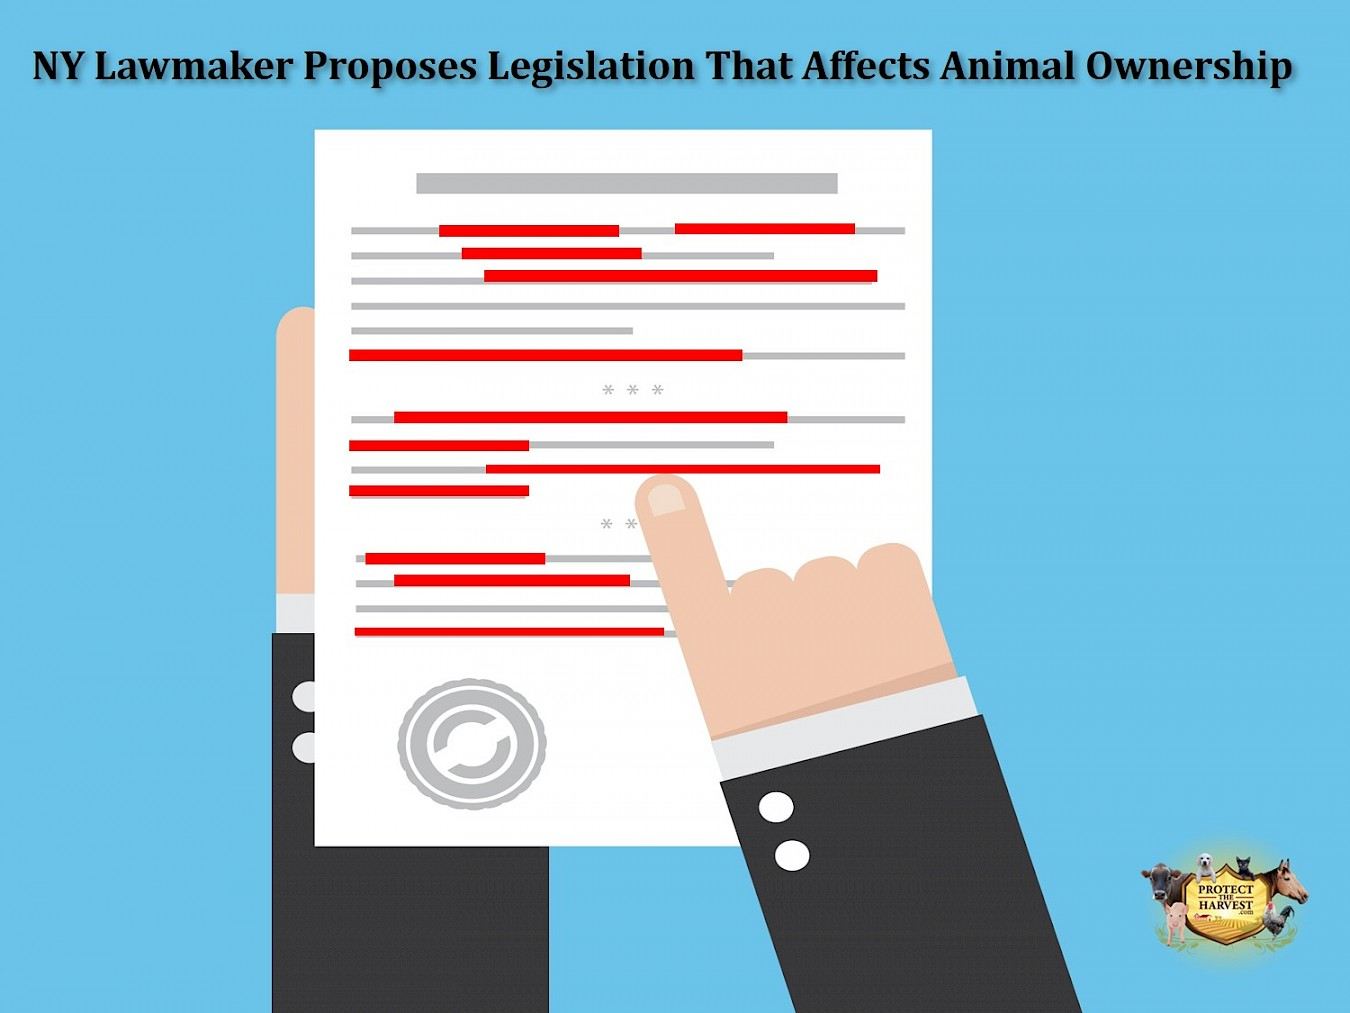 New York Lawmaker Proposes Legislation That Affects Animal Ownership